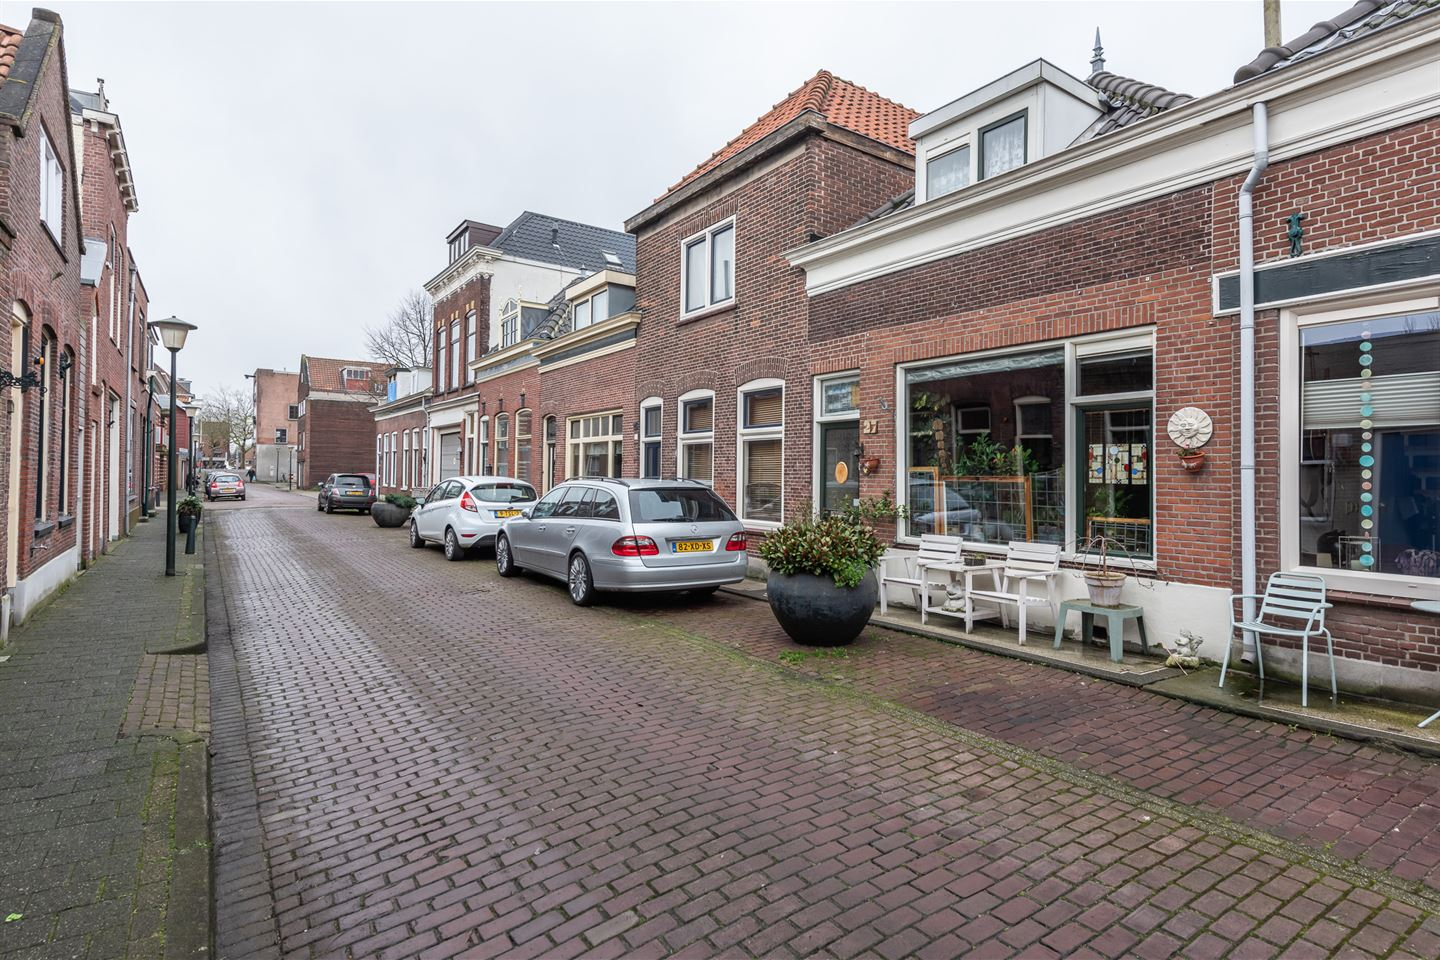 View photo 2 of Willem Beukelszoonstraat 27